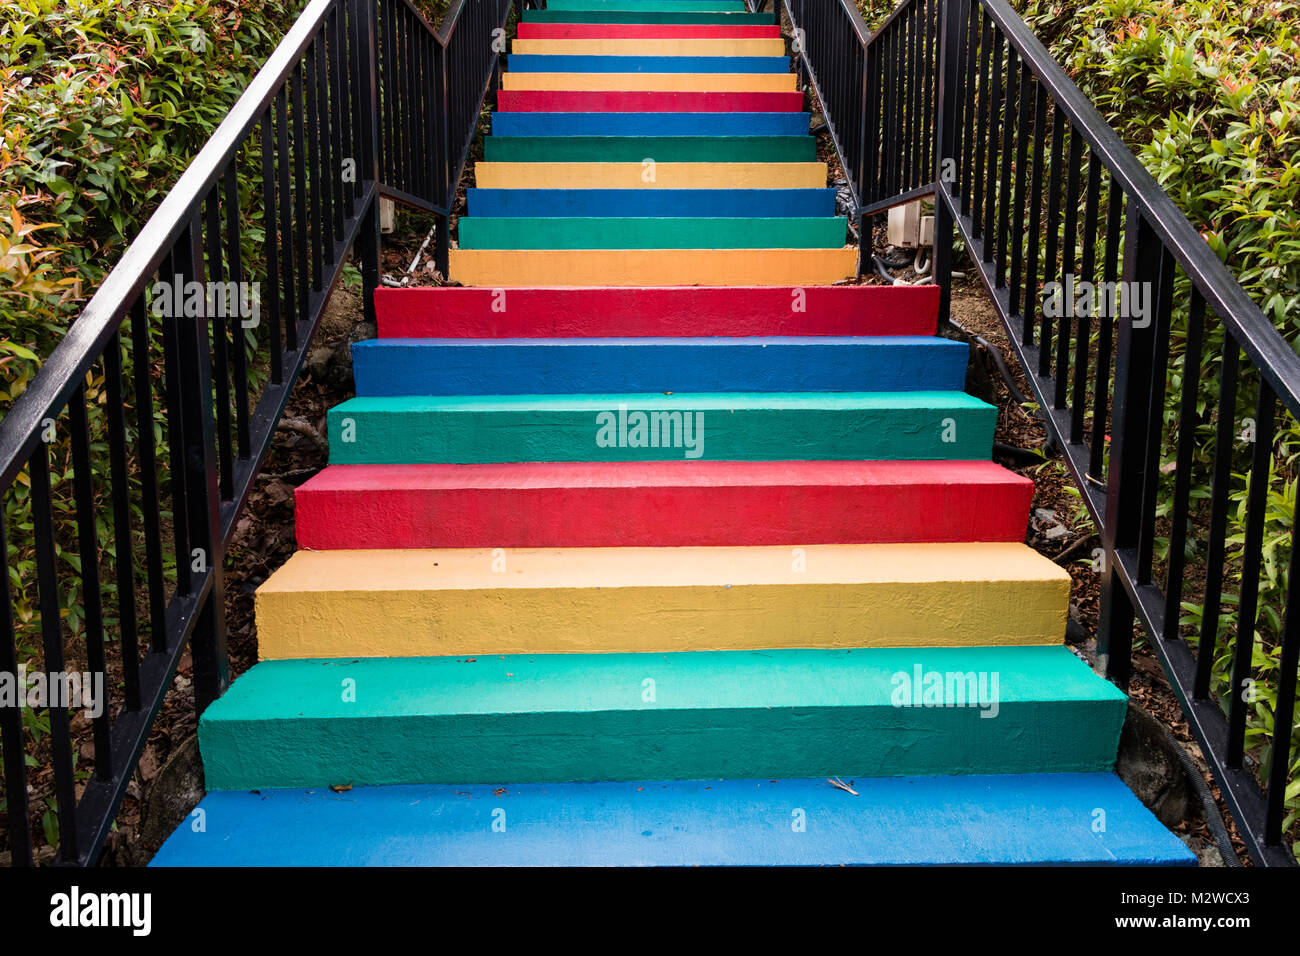 Stairs painted in rainbow colors background Stock Photo